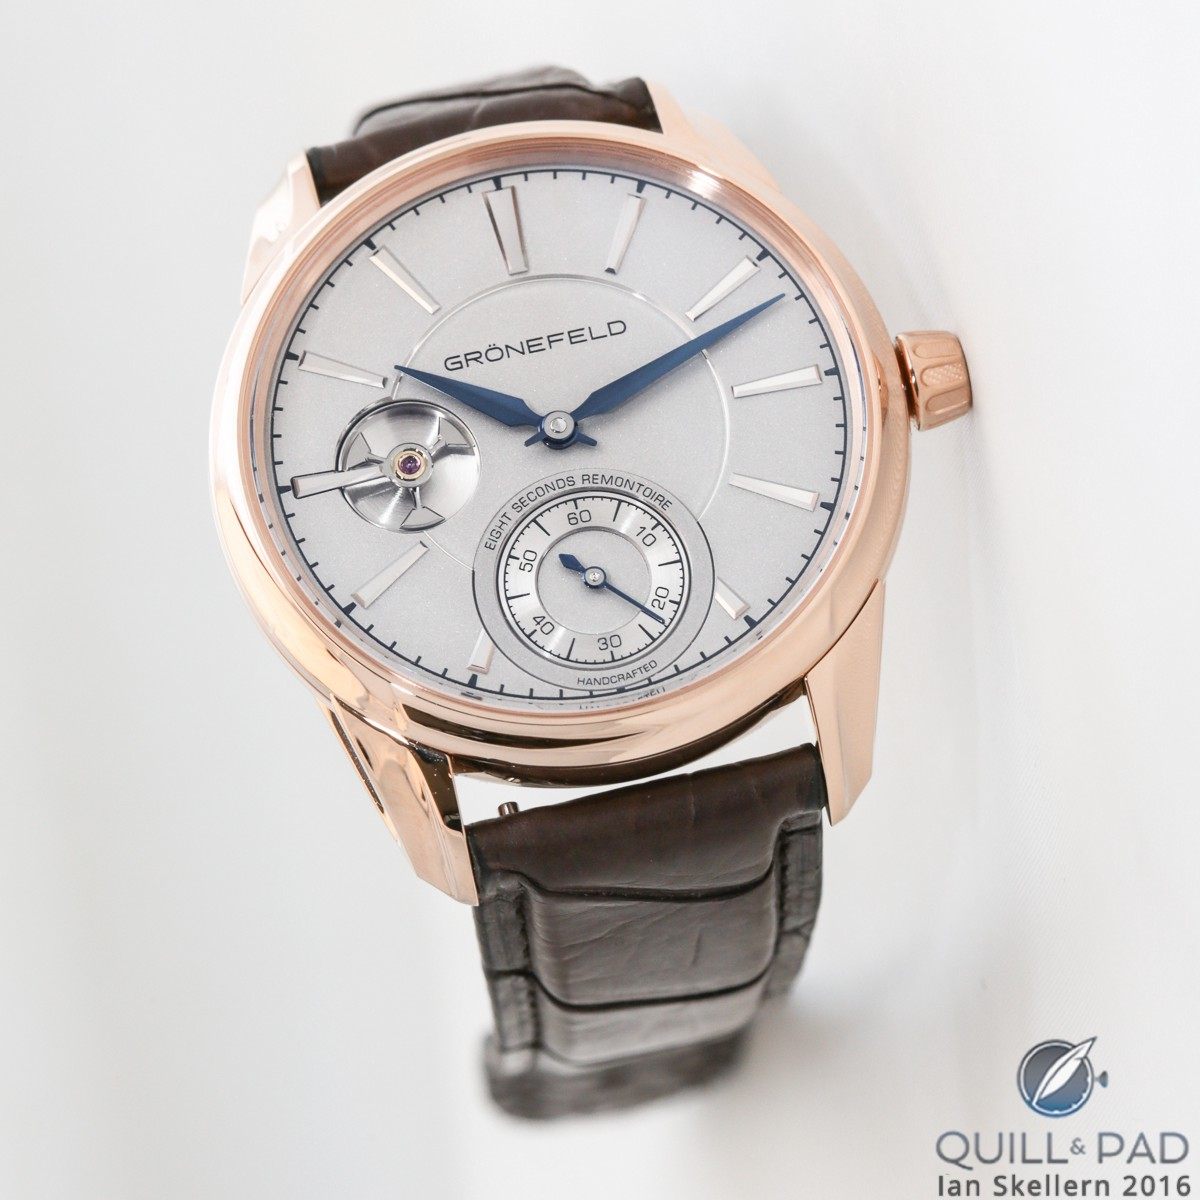 Grönefeld 1941 Remontoire in red gold with frosted sterling silver dial